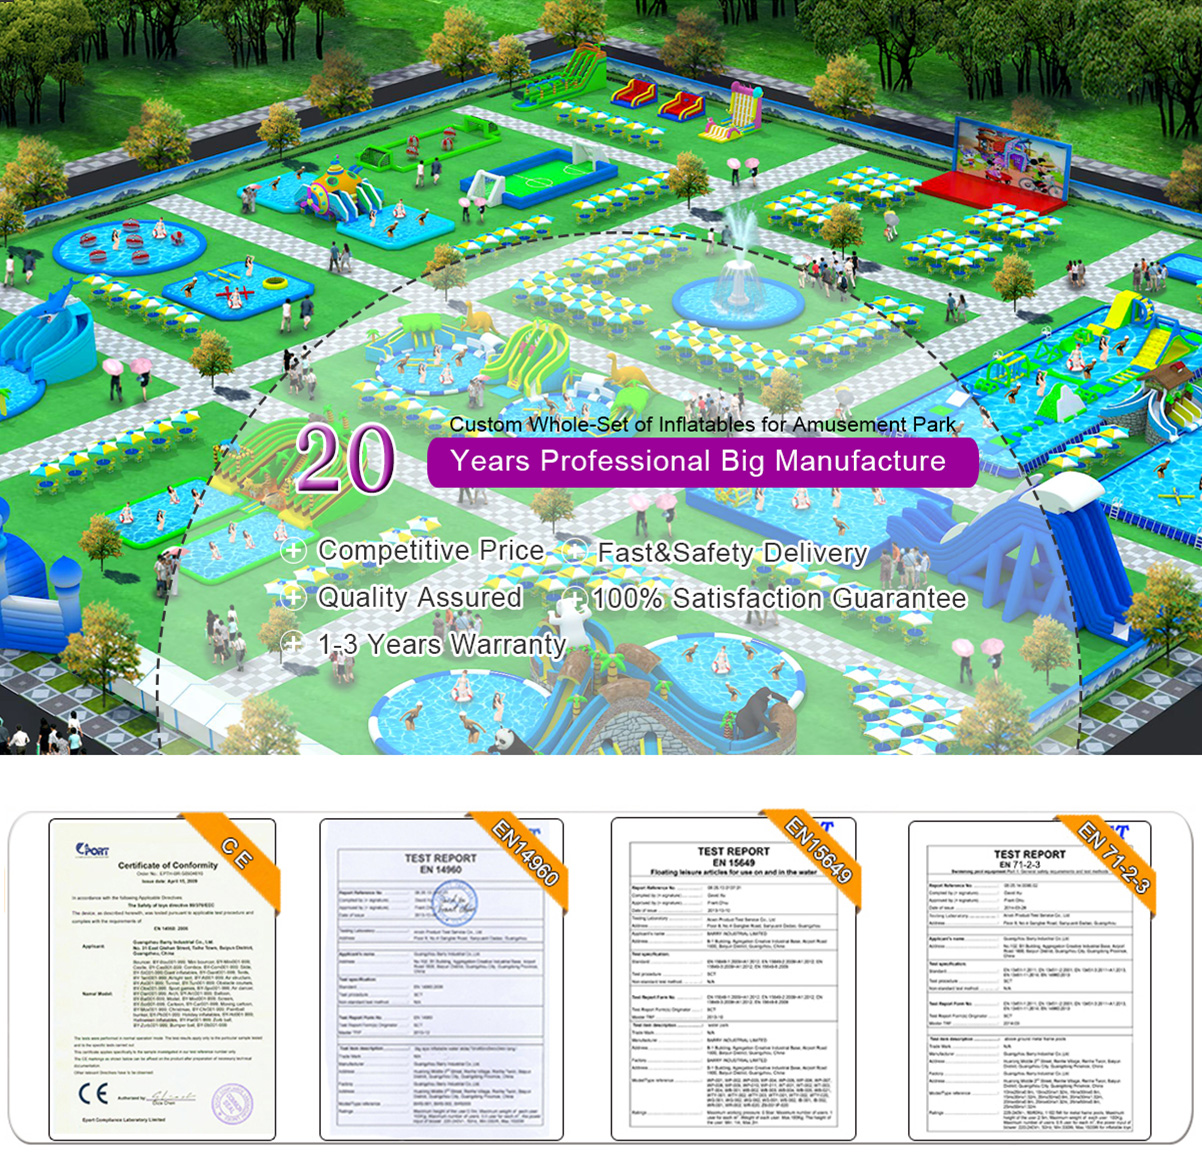 Barry inflatable factory china,inflatable manufacturer,inflatable floating water park,new inflatable product,inflatable water park project,inflatable gym mat,Gymnastics mat,inflatable 2018,inflatable,inflatable water park,inflatable pool,inflatable water slide,inflatable tent